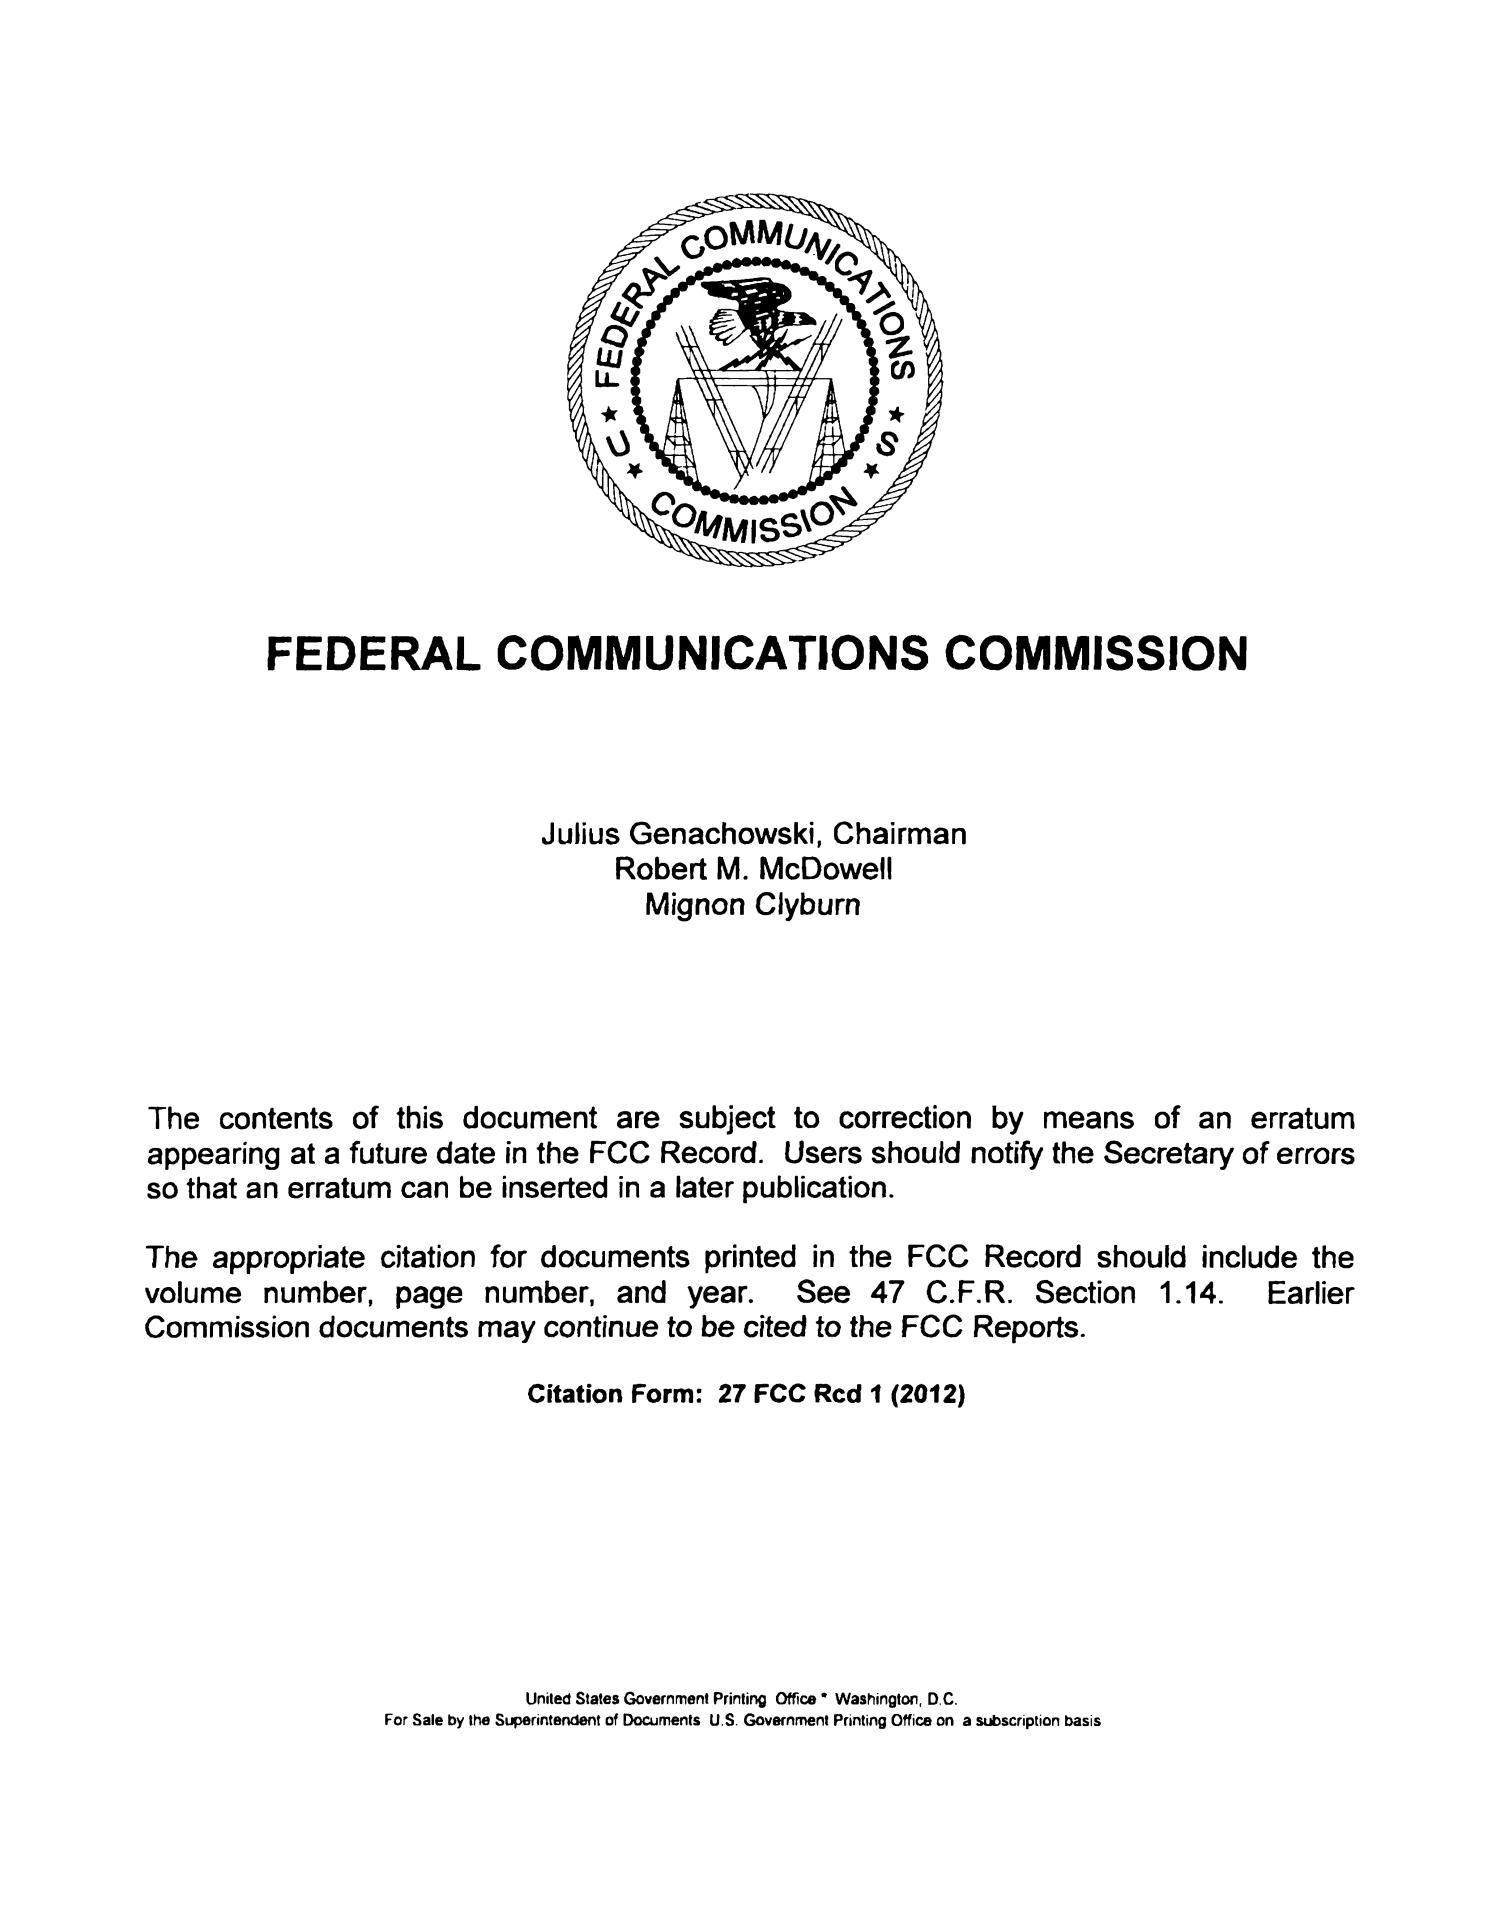 FCC Record, Volume 27, No. 2, Pages 937 to 1877, February 6 - February 17, 2012                                                                                                      None